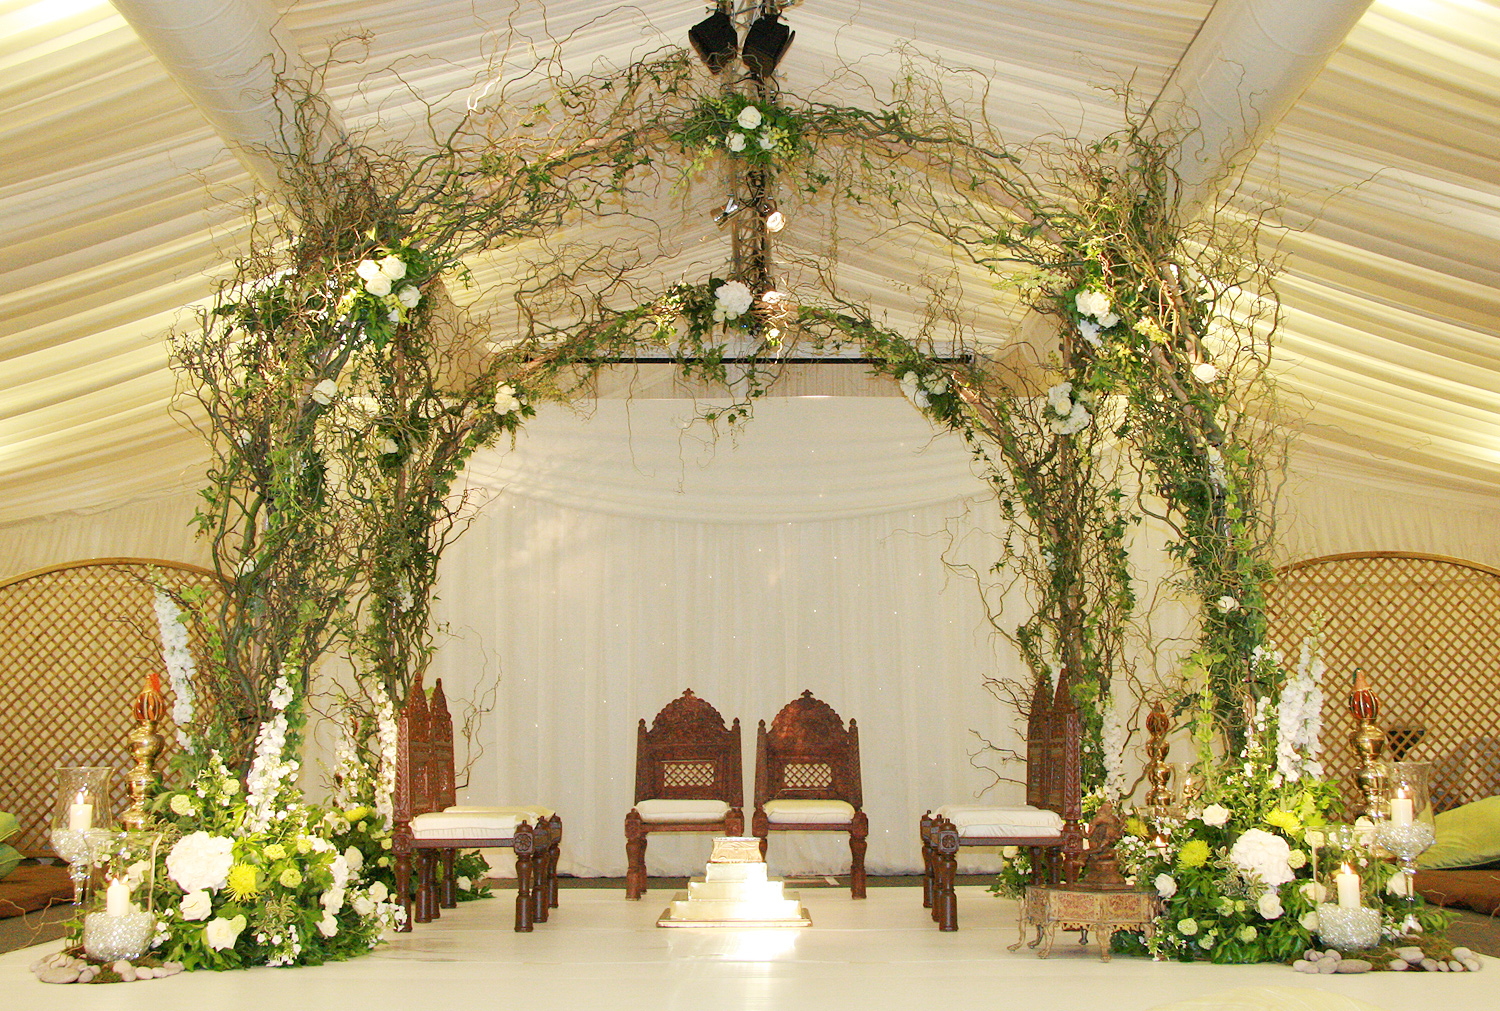 Stunning Enchanted Woodland Mandap created from four arches bound together woven with willow branches